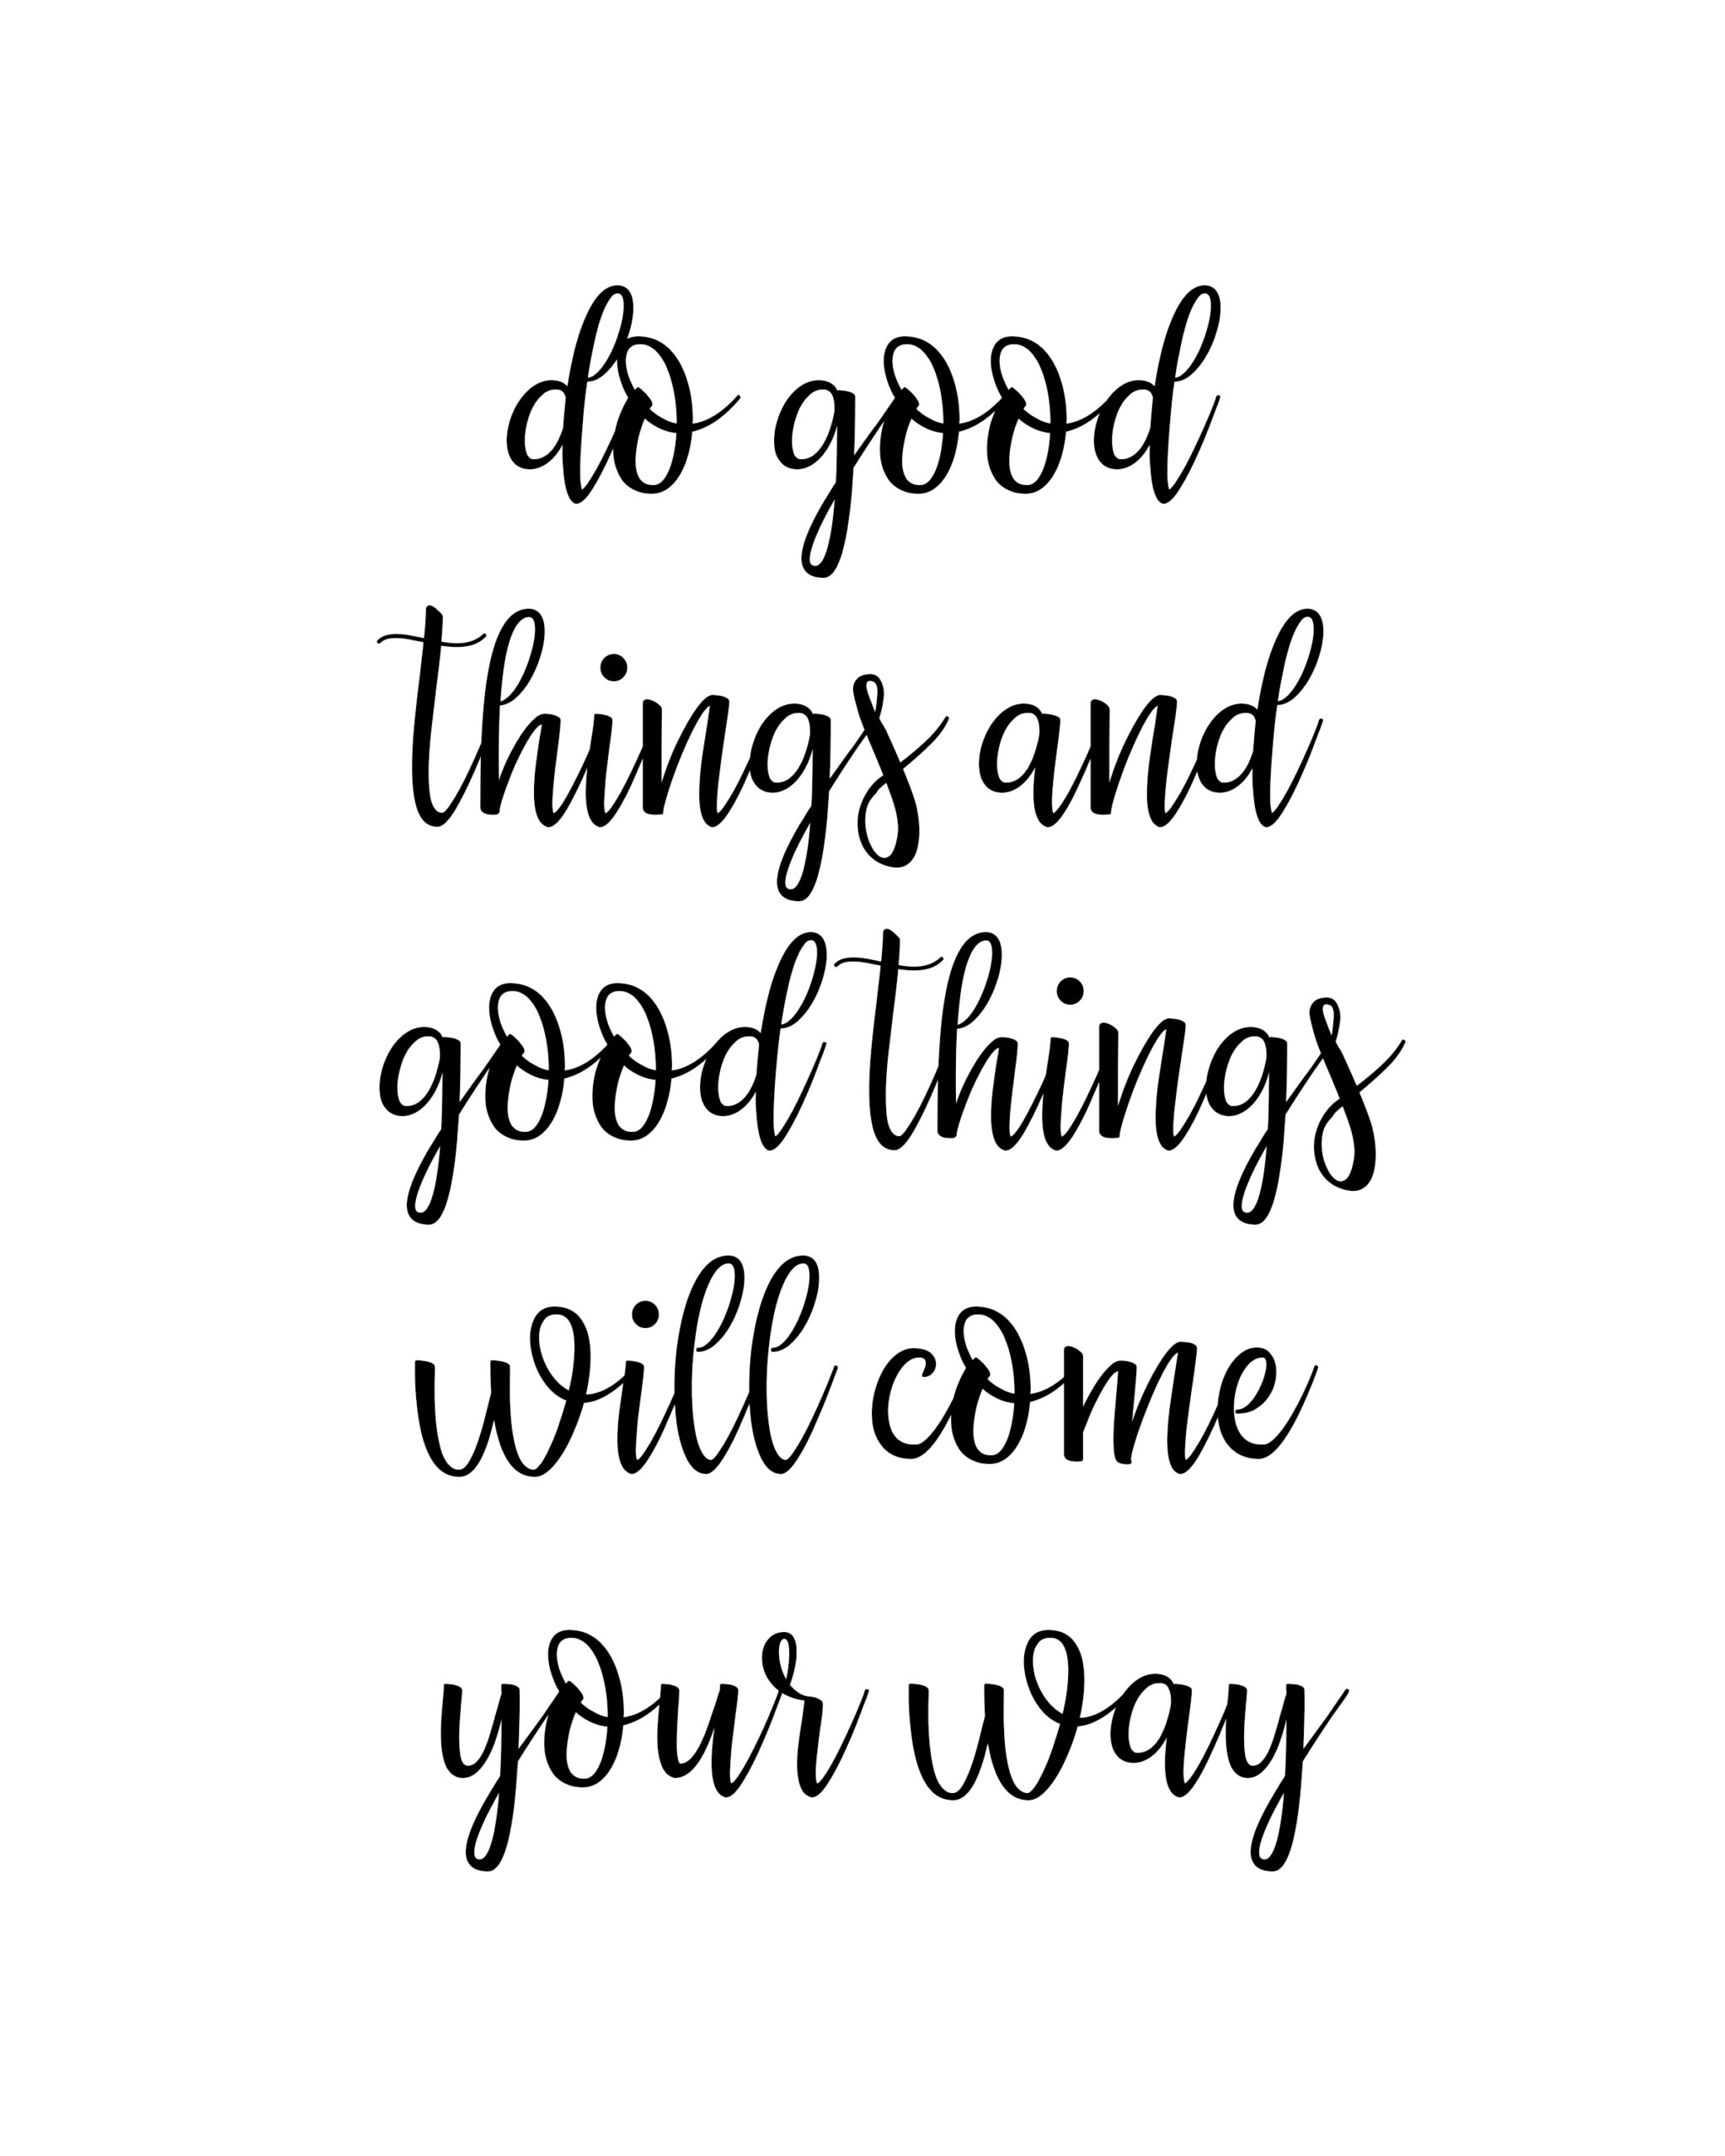 Do good things and good things will come your way